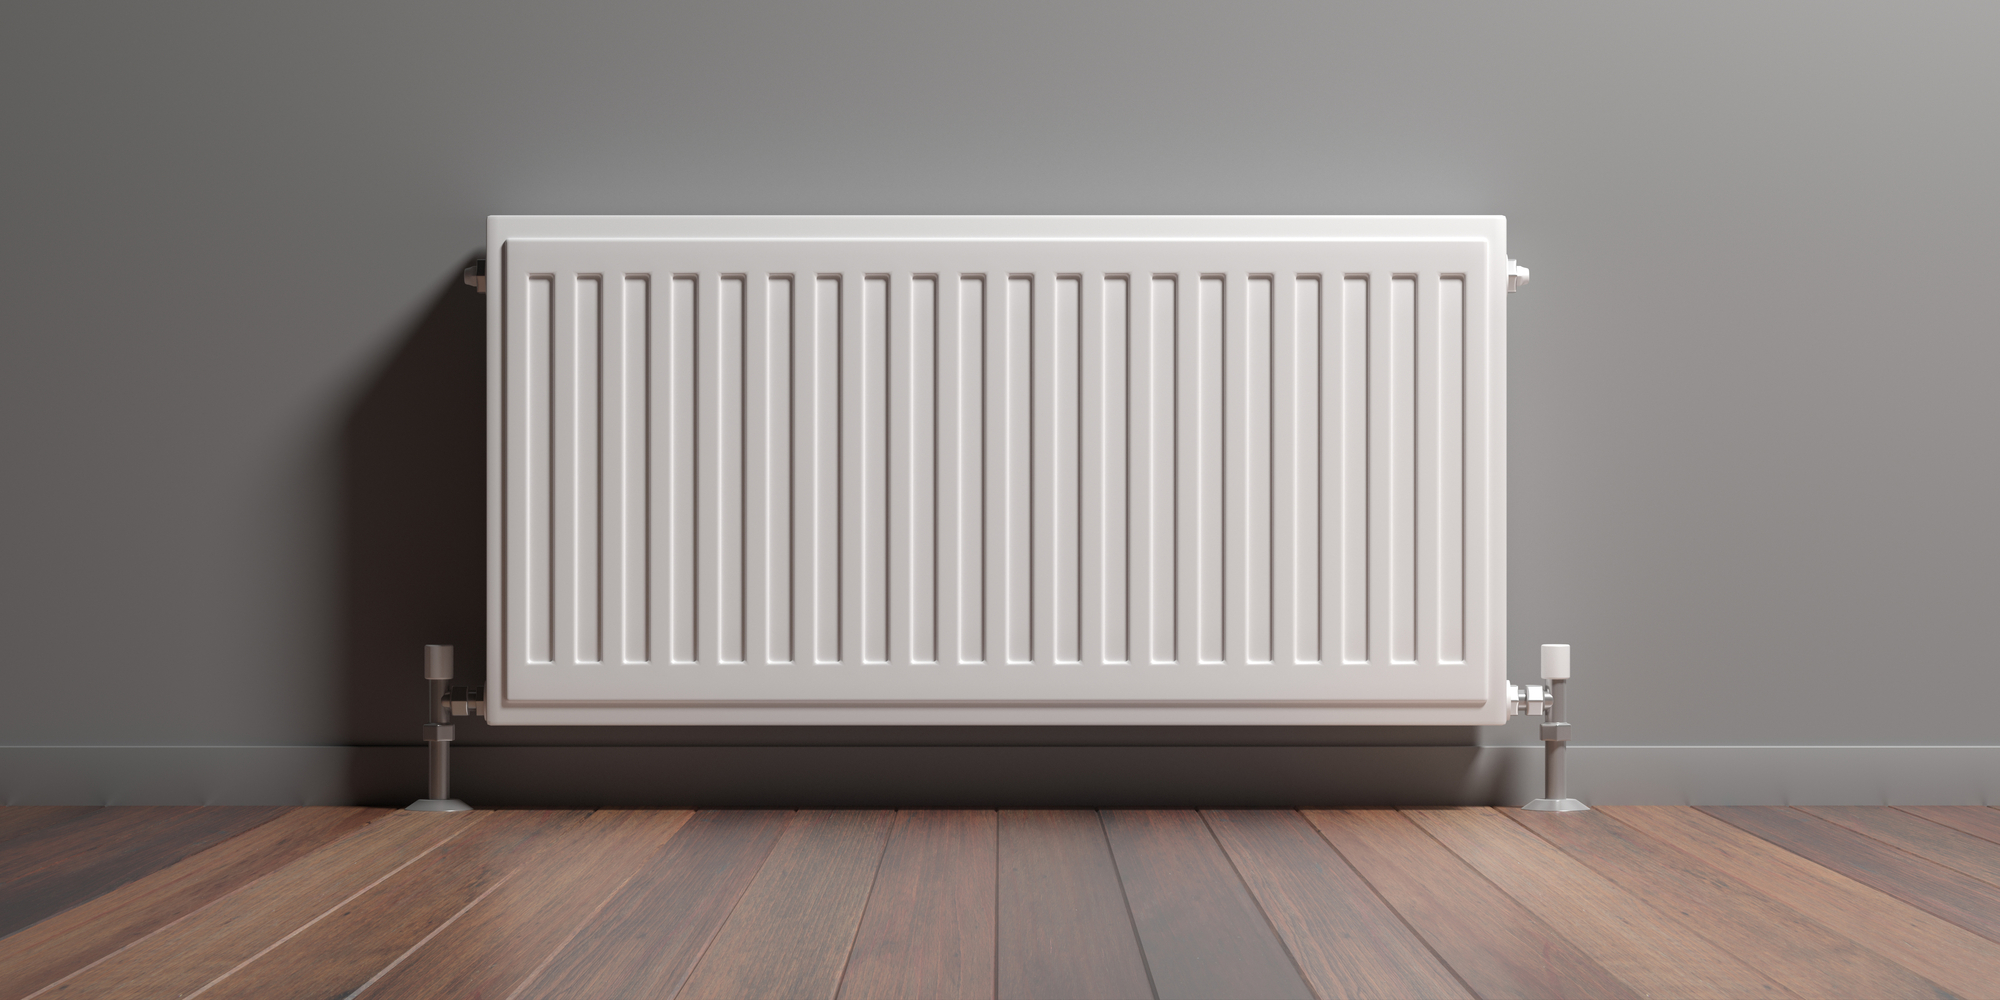 How to paint behind a radiator